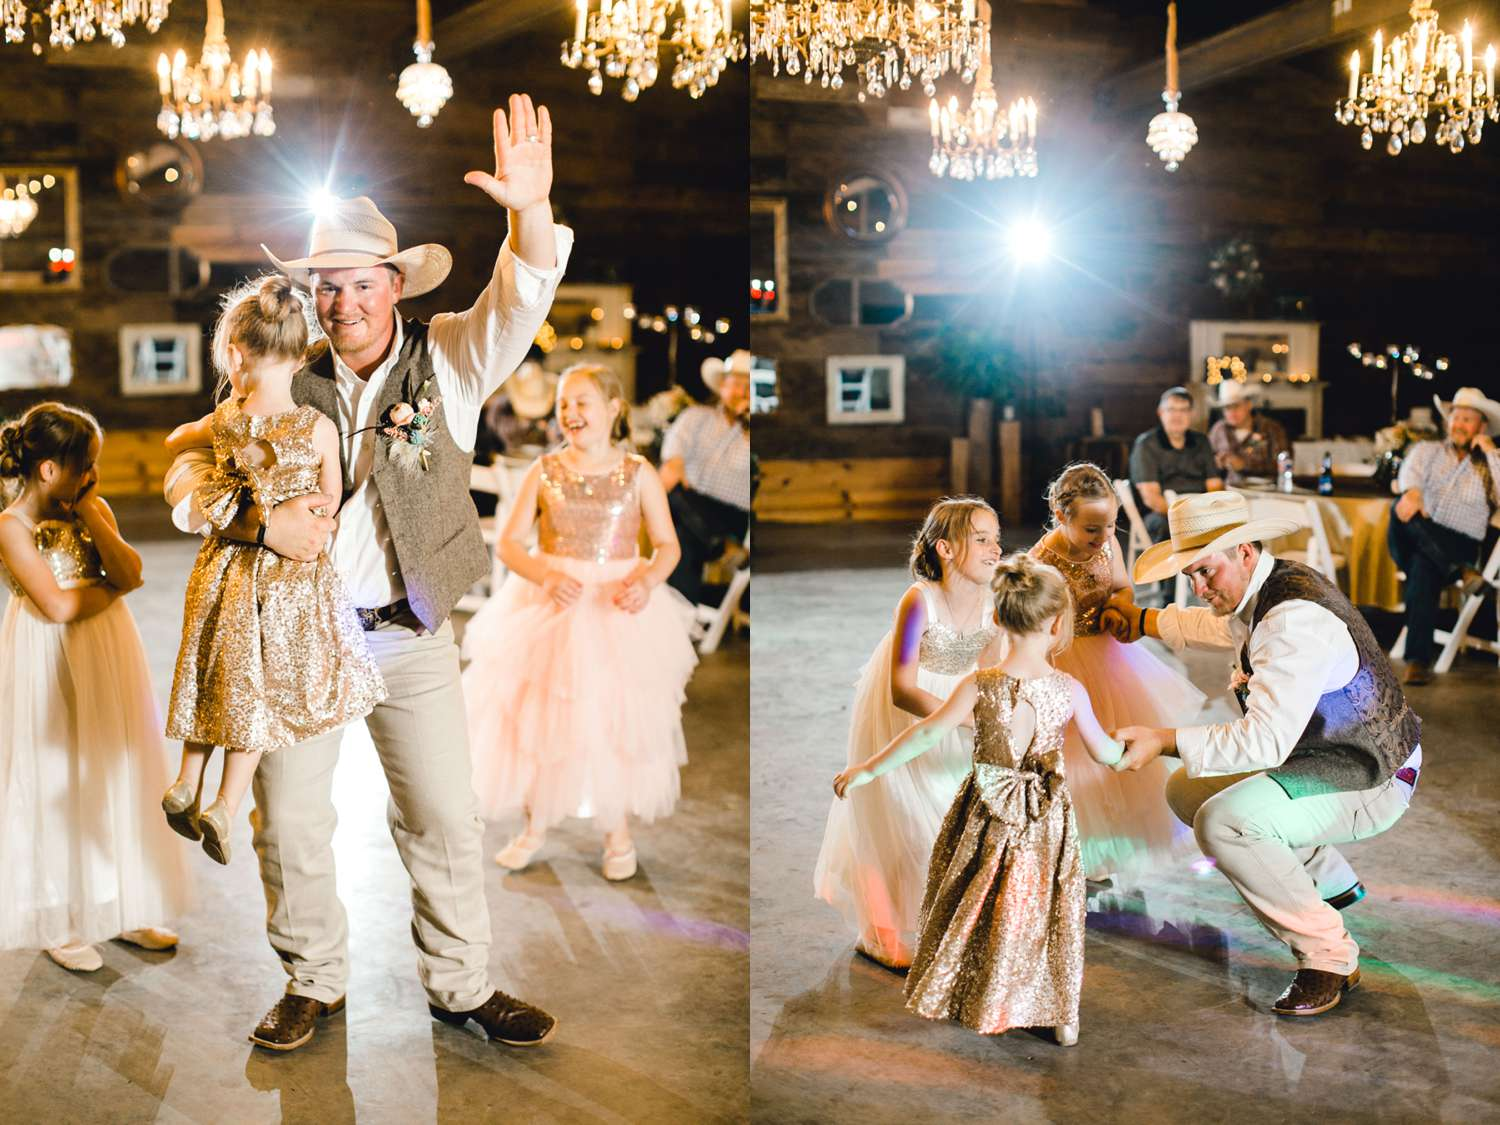 SARAH+TREVOR+BADGETT+SPARROW+CREEK+GRAHAM+TEXAS+ALLEEJ+WEDDINGS_0159.jpg